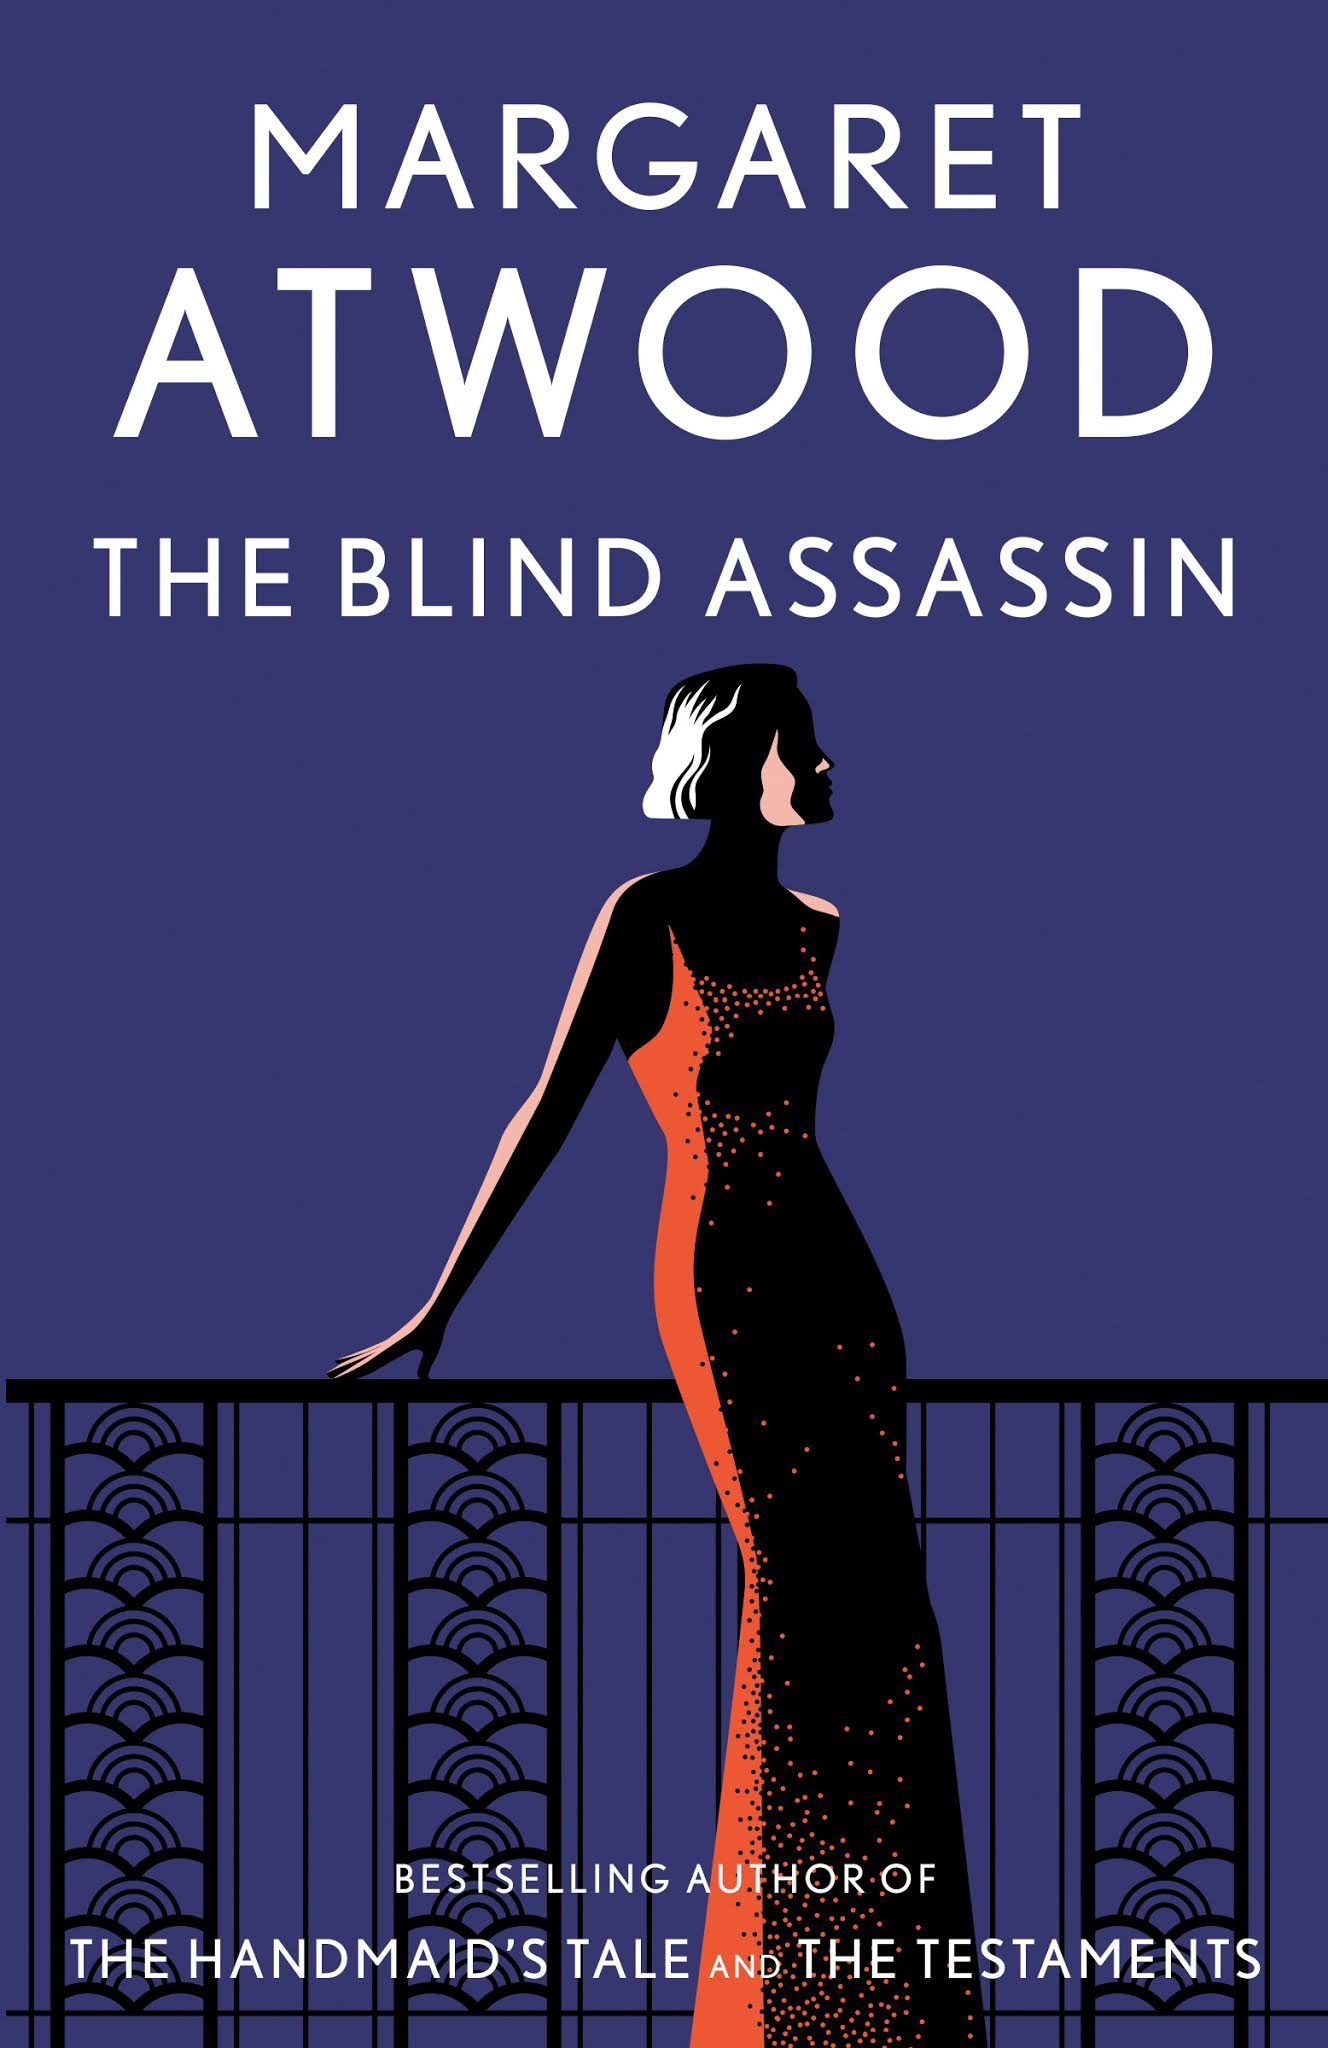 Book cover for The Blind Assassin by Margaret Atwood The Blind Assassin in the South Manchester, Chorlton, Cheadle, Fallowfield, Burnage, Levenshulme, Heaton Moor, Heaton Mersey, Heaton Norris, Heaton Chapel, Northenden, and Didsbury book group